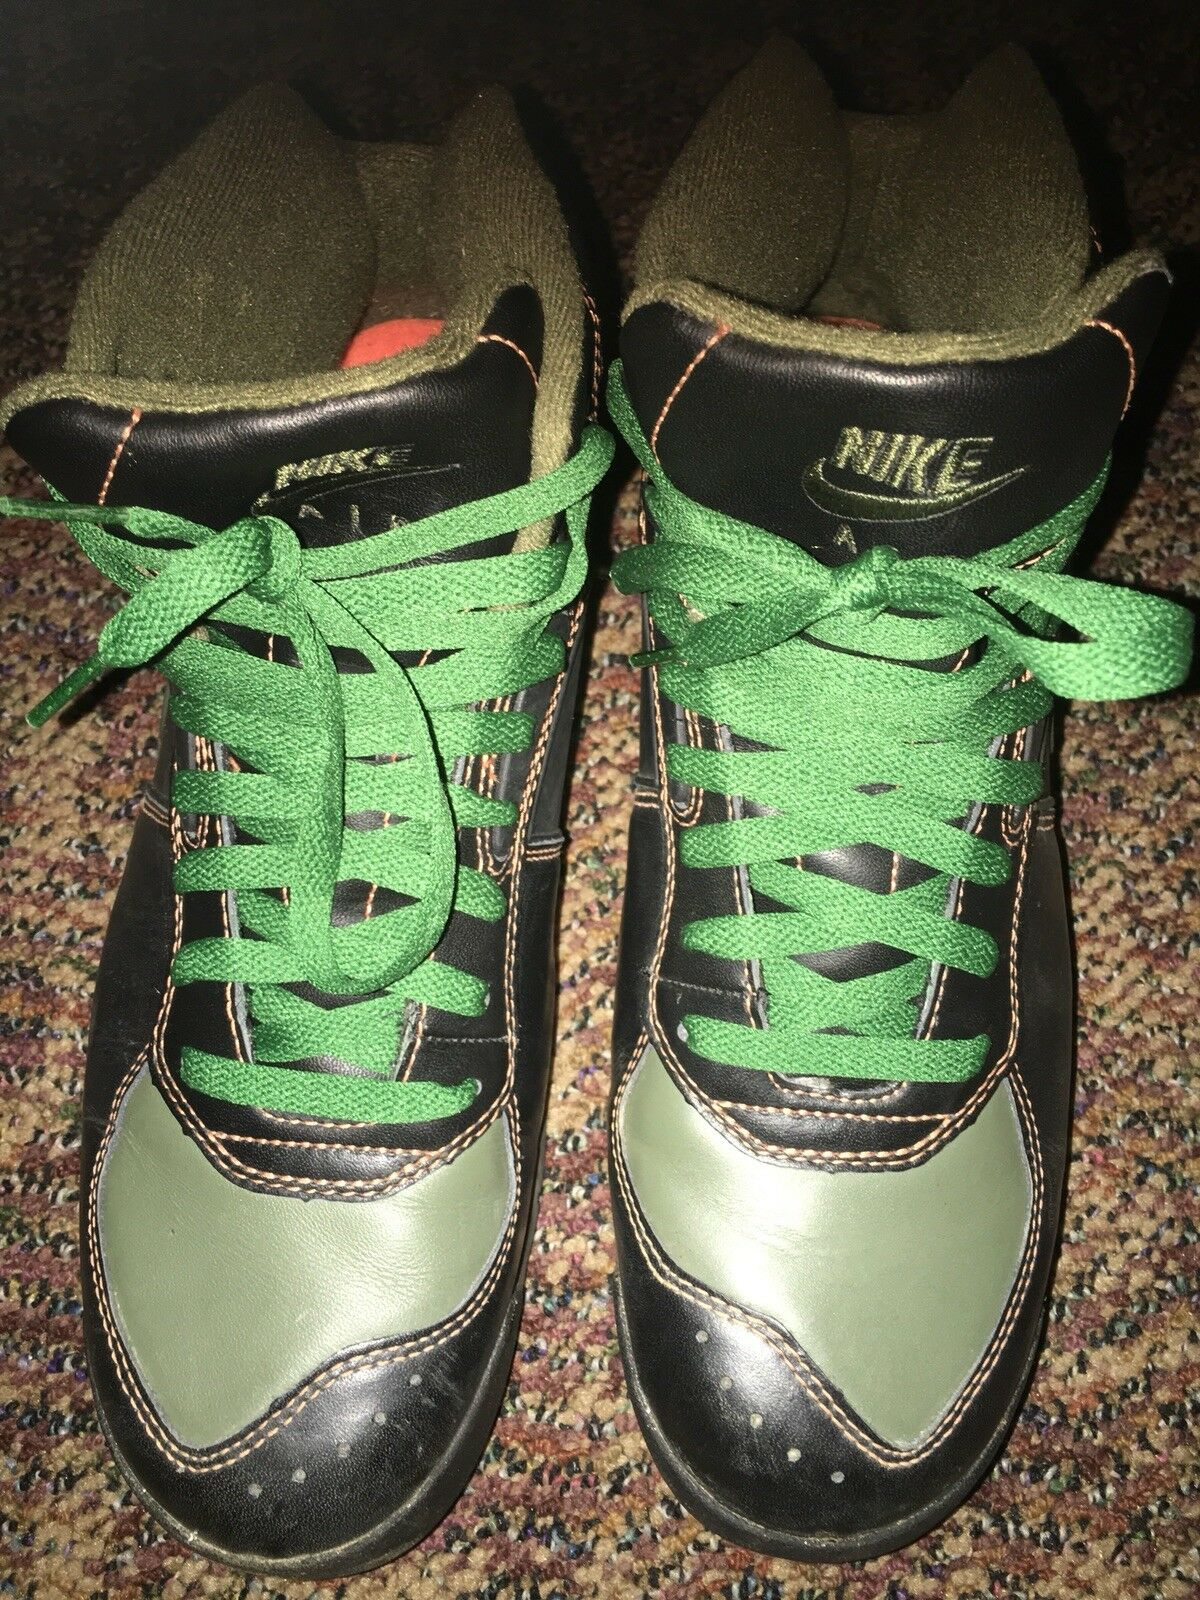 NIKE AIR BALTgold   GOOD CONDITION   SEMI-RARE   NO RESERVE   SEE DETAILS